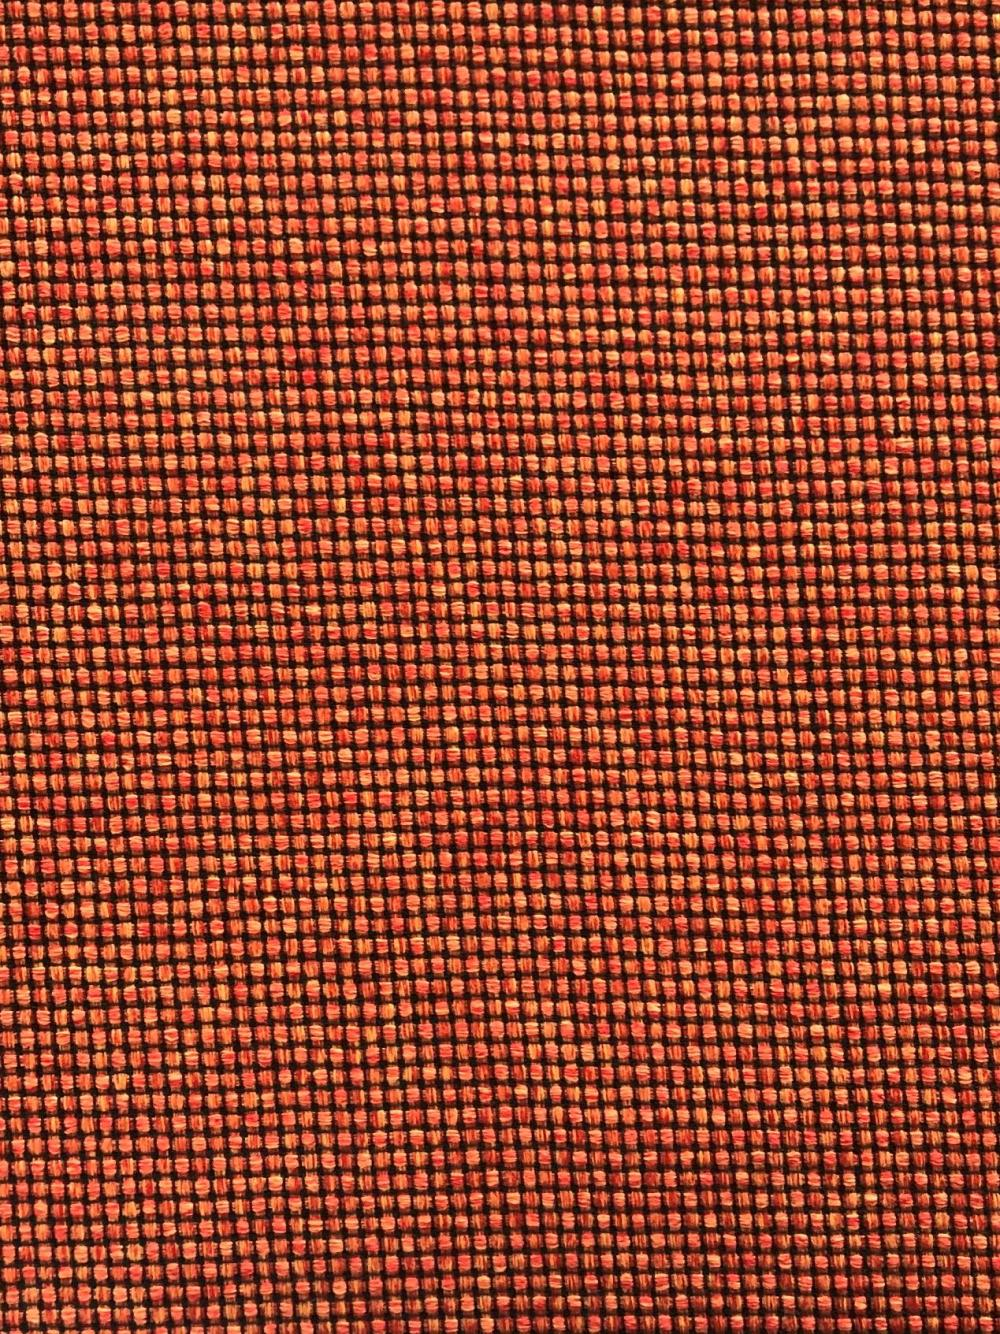 Most Popular New Design Hotel Upholstery Sofa Fabric